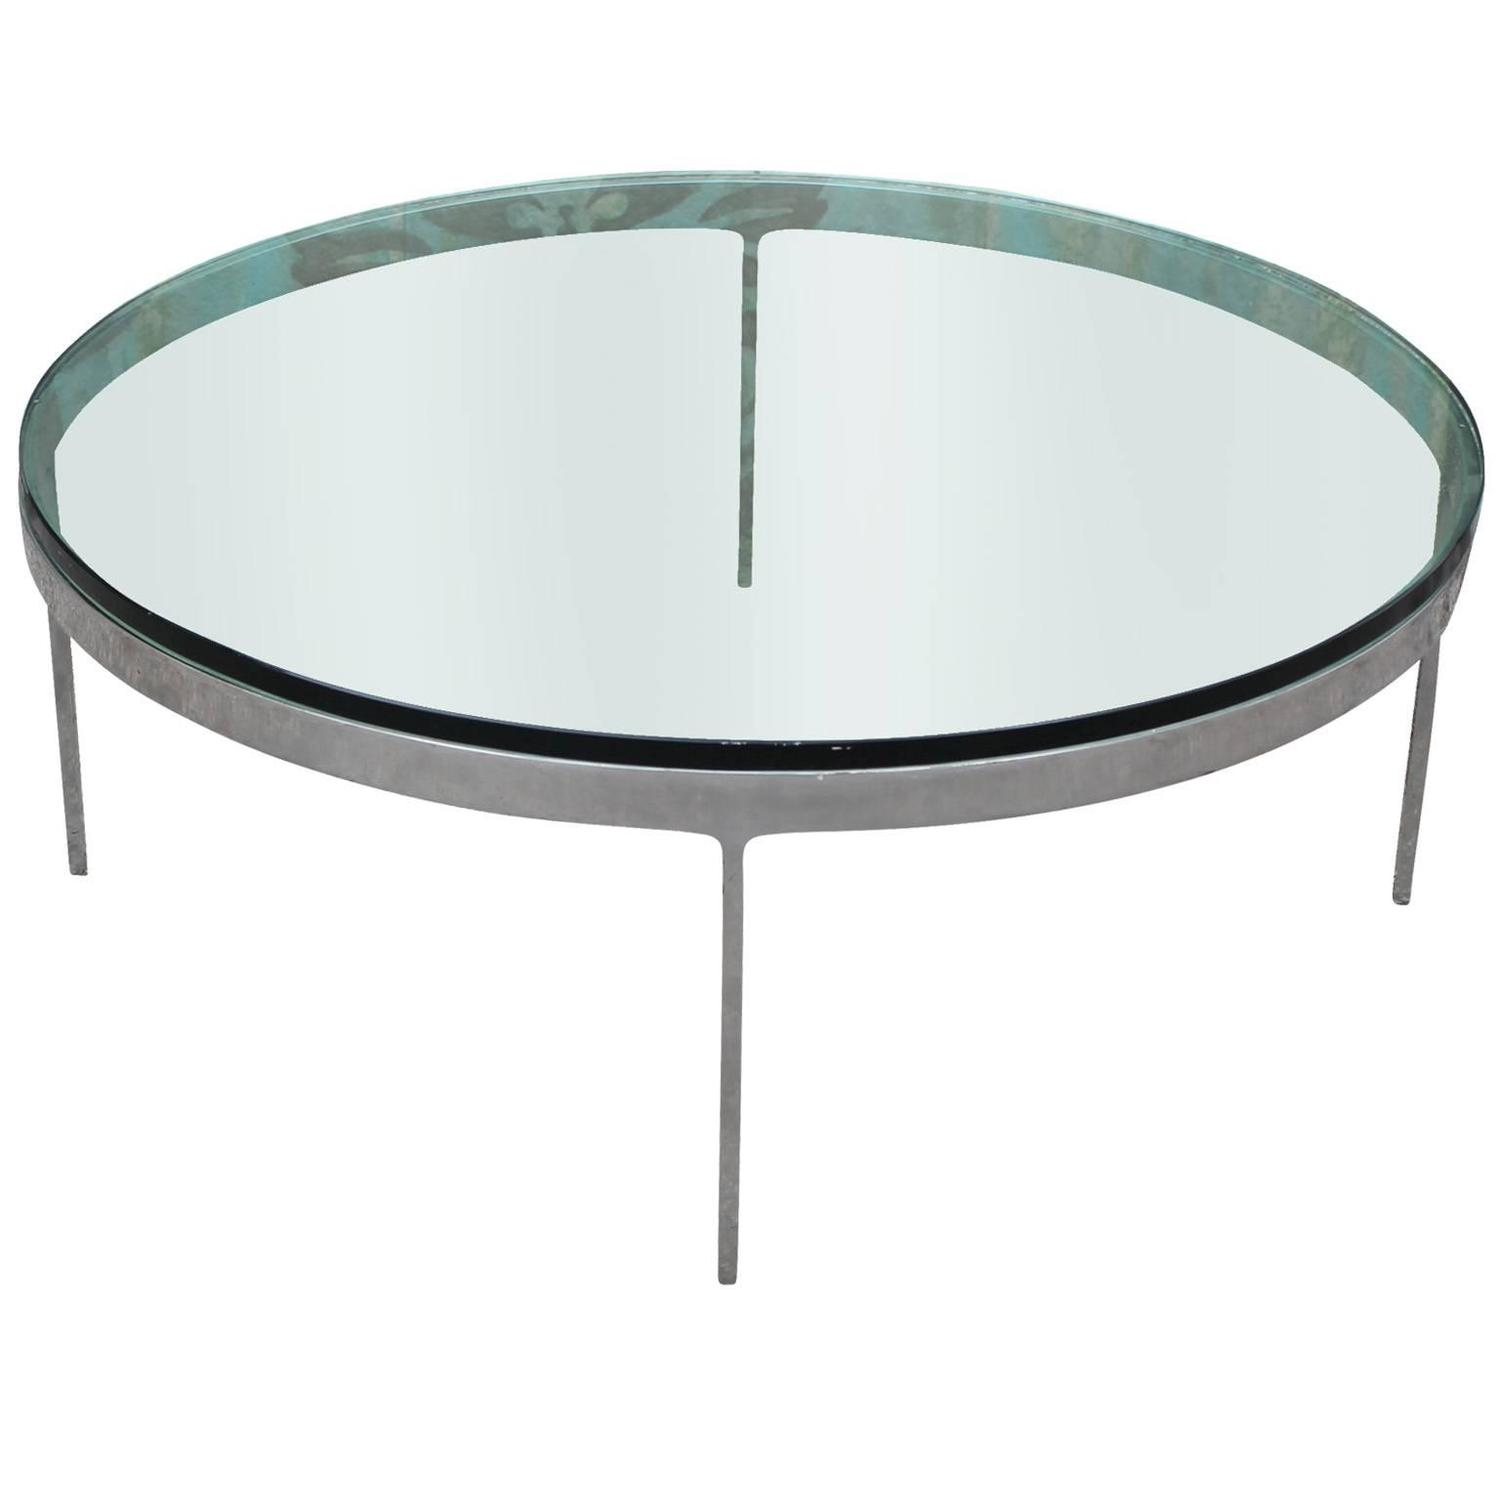 Excellent Steel And Glass Nicos Zographos Round Coffee Table At